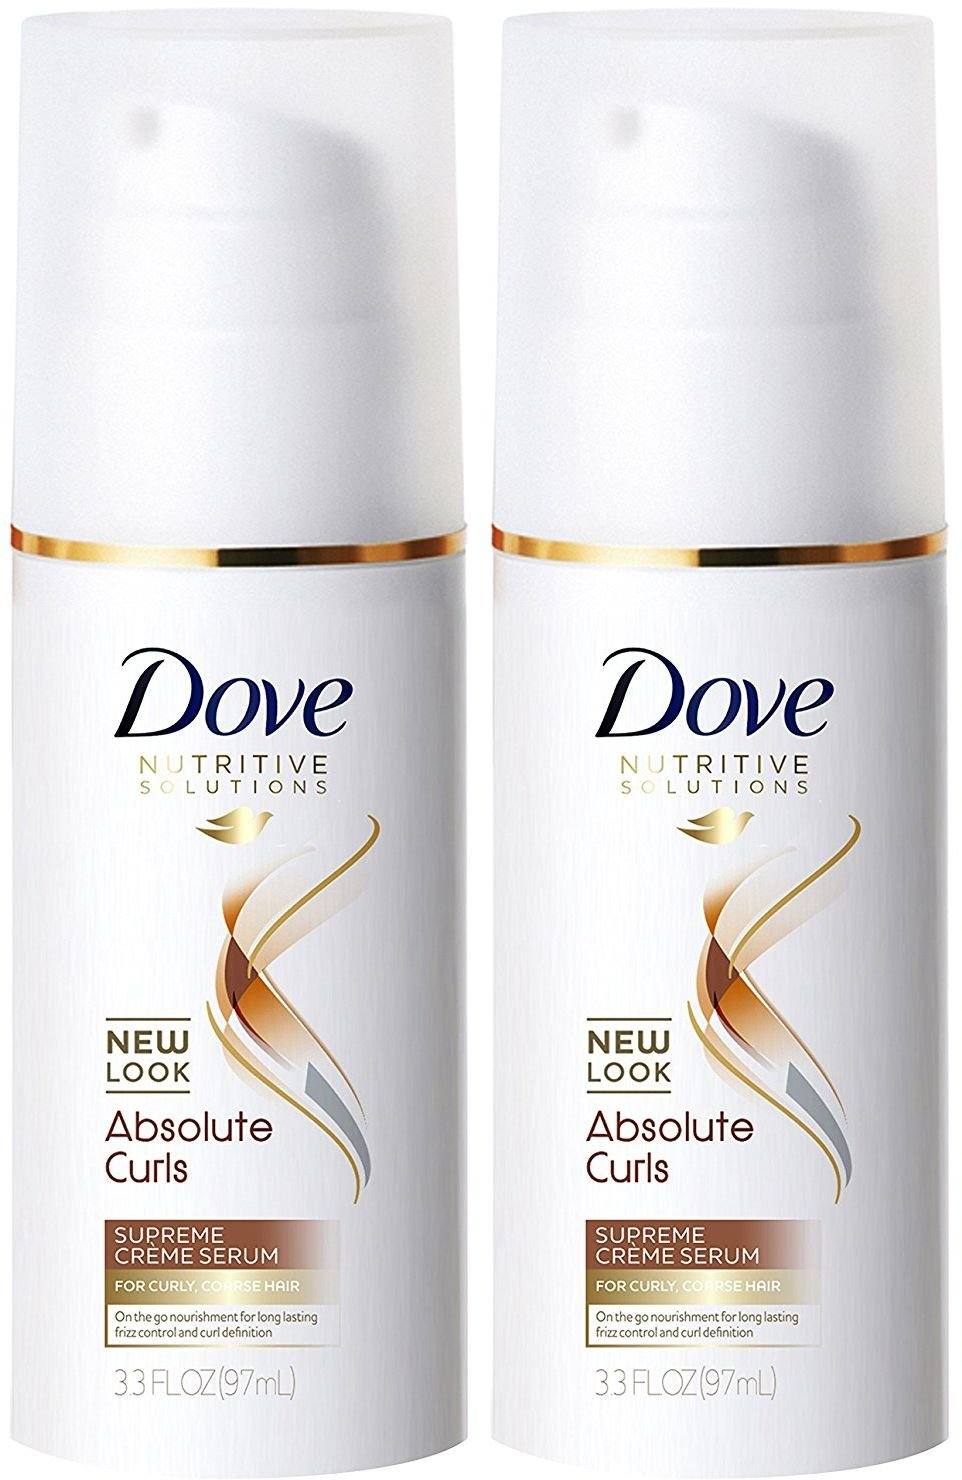 Dove Advanced Hair Series Quench Absolute Supreme Creme Serum 3.30 oz (Pack of 2)